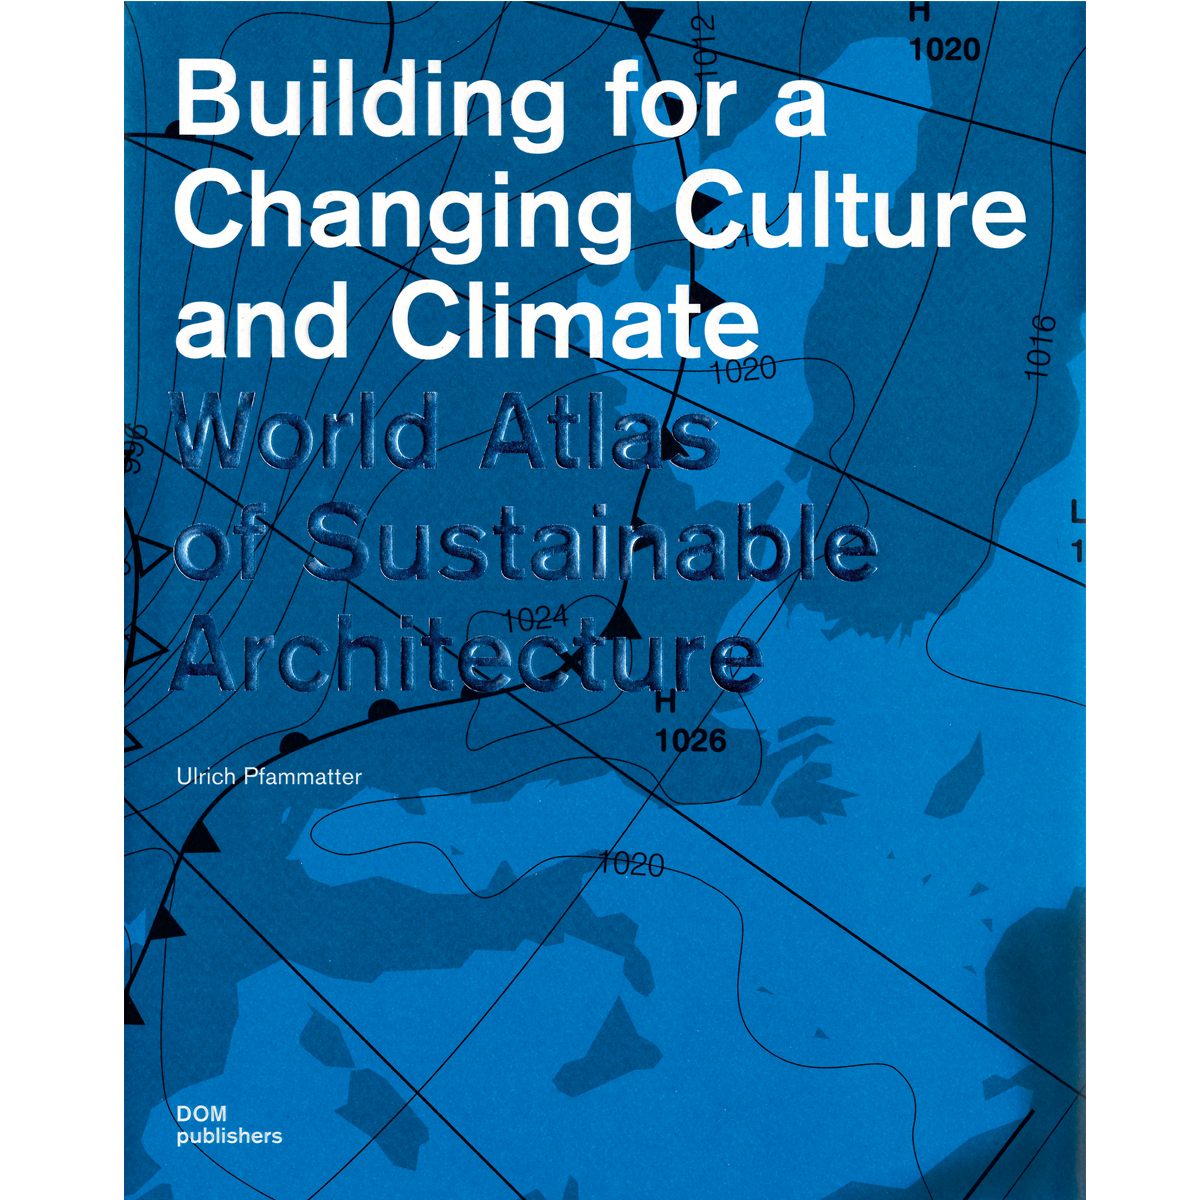 Building for a Changing Culture and Climate